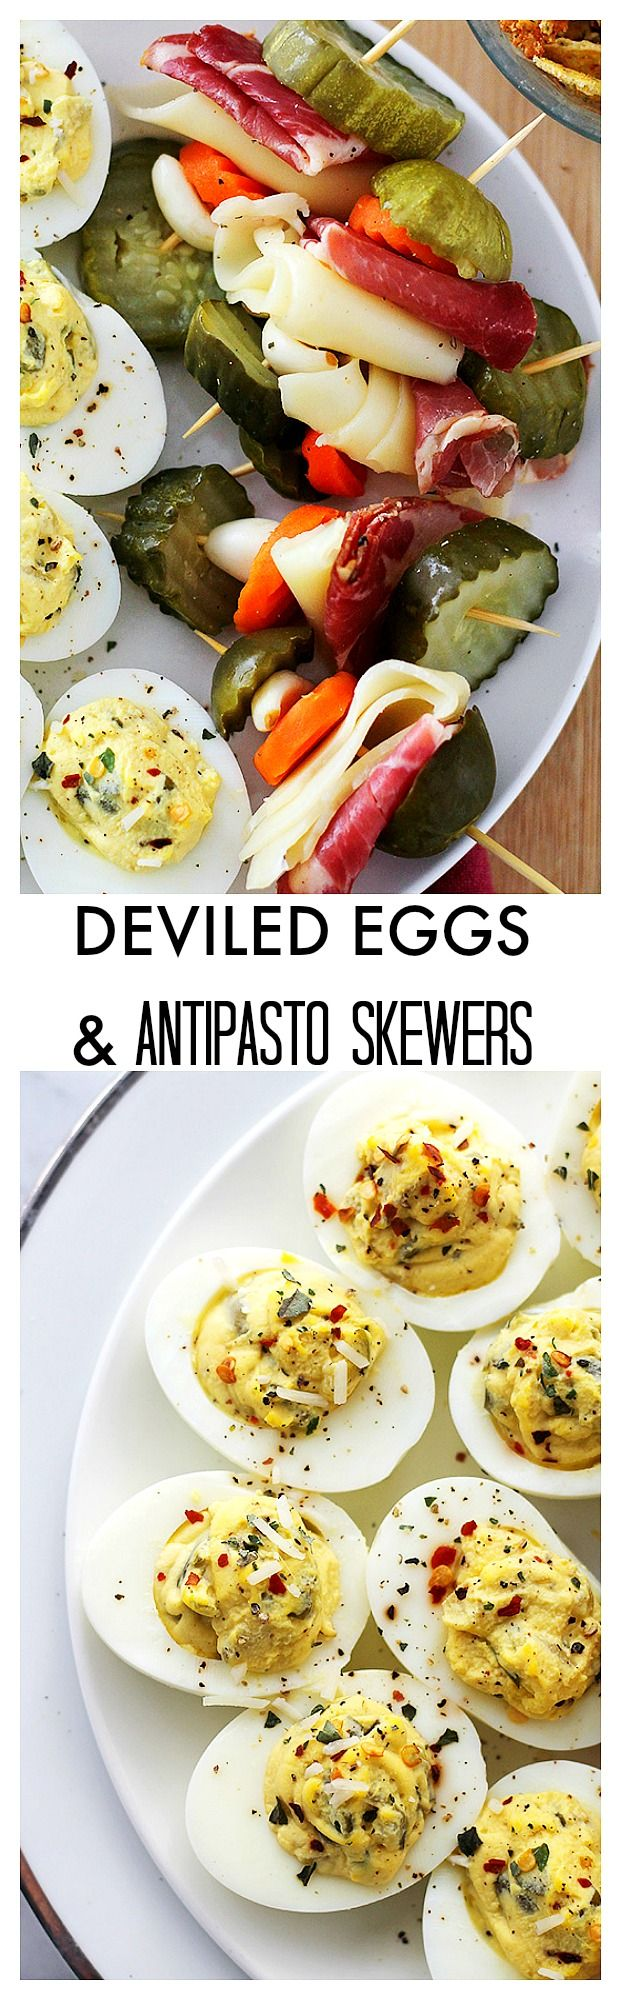 {Italy} Deviled Eggs and Antipasto Skewers | www.diethood.com | Delicious, crowd-pleasing appetizers, perfect for Memorial Day, BBQ's, 4th of July Parties!